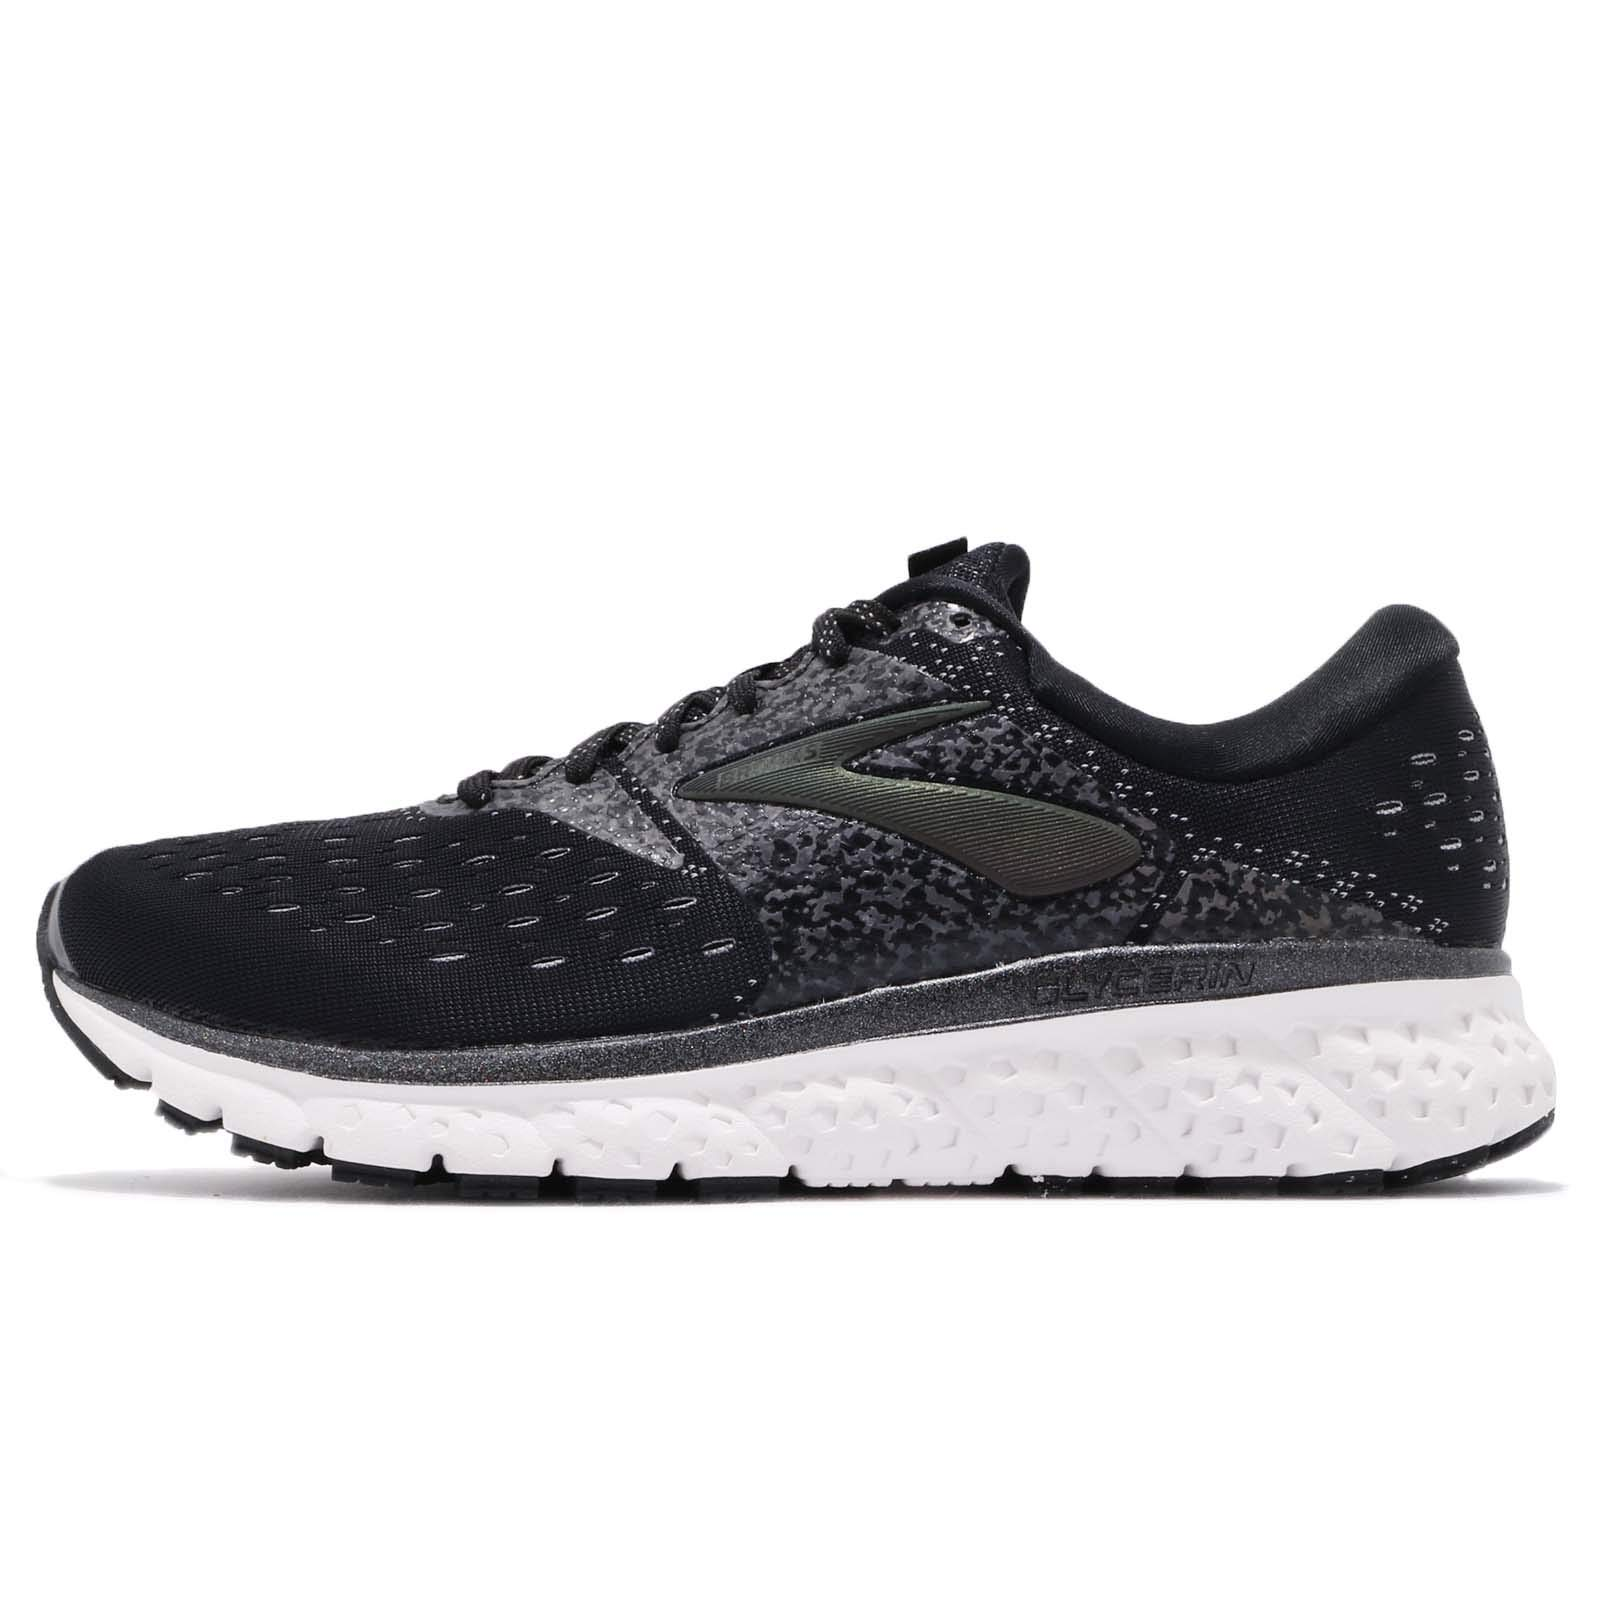 Brooks Mens Glycerin 16 - Reflective Black/White/Grey - D - 10.5